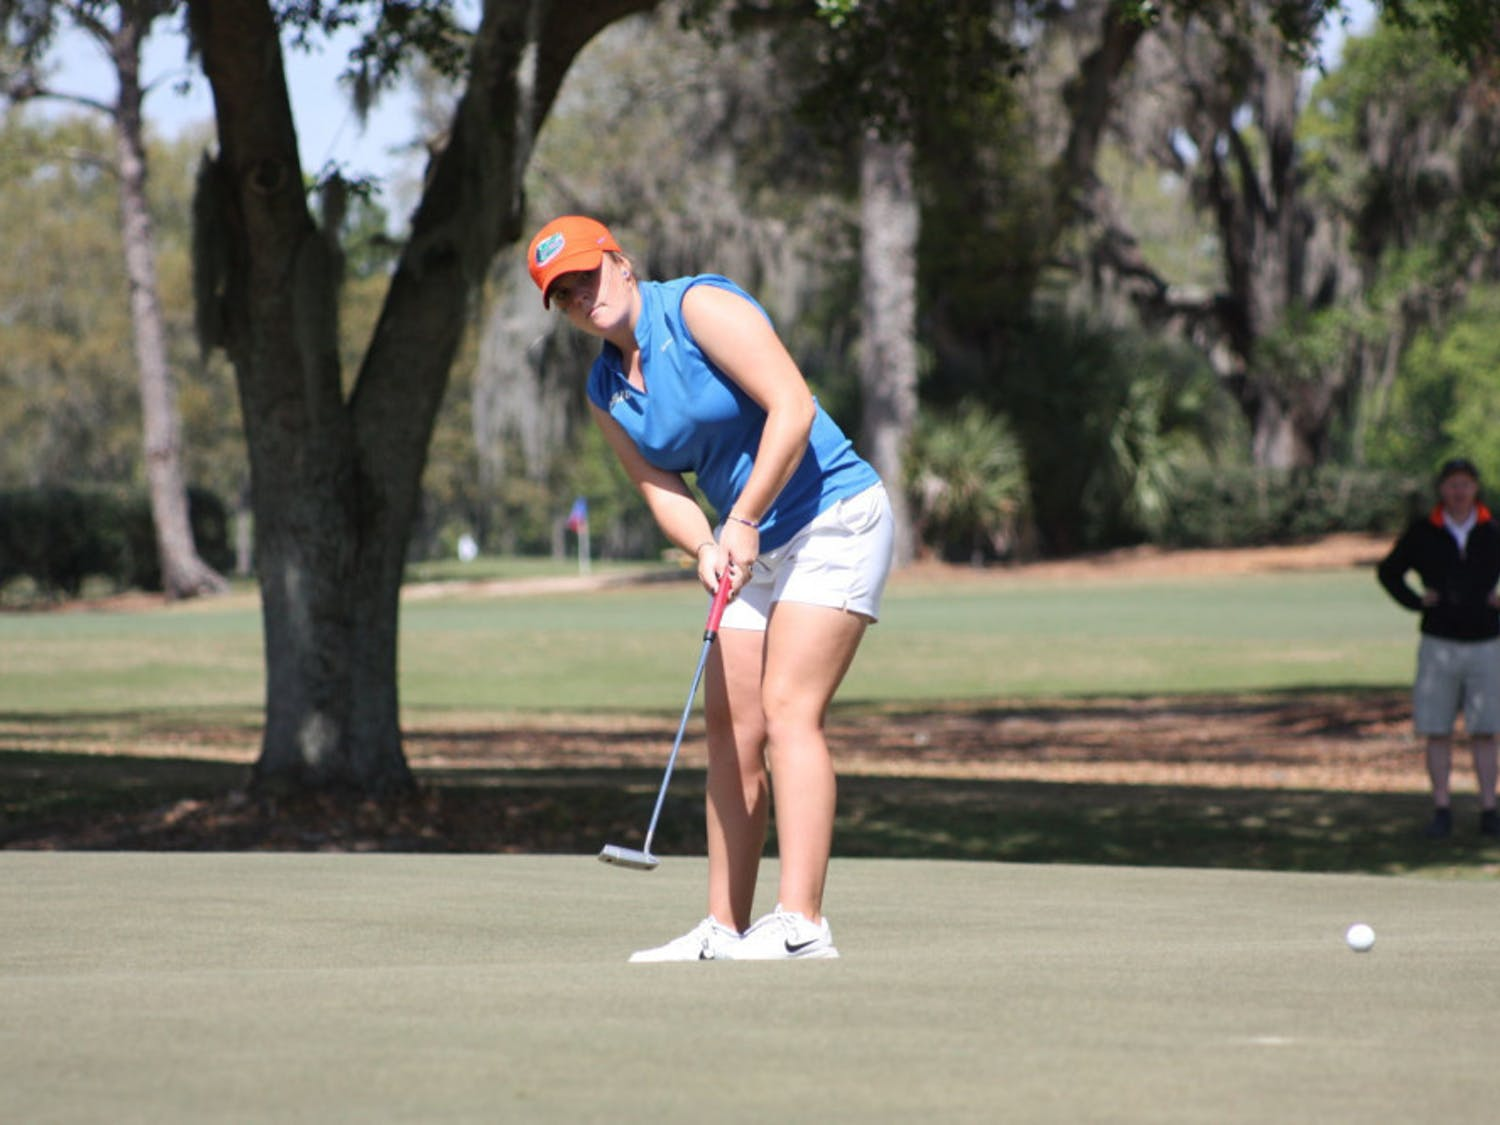 Marta Perez was exempt from the Liz Murphy Collegiate Classic after competing in theinaugural Augusta National Women's Amatuer last weekend. The Gators women's Golf team finished the tournament in sixth place.